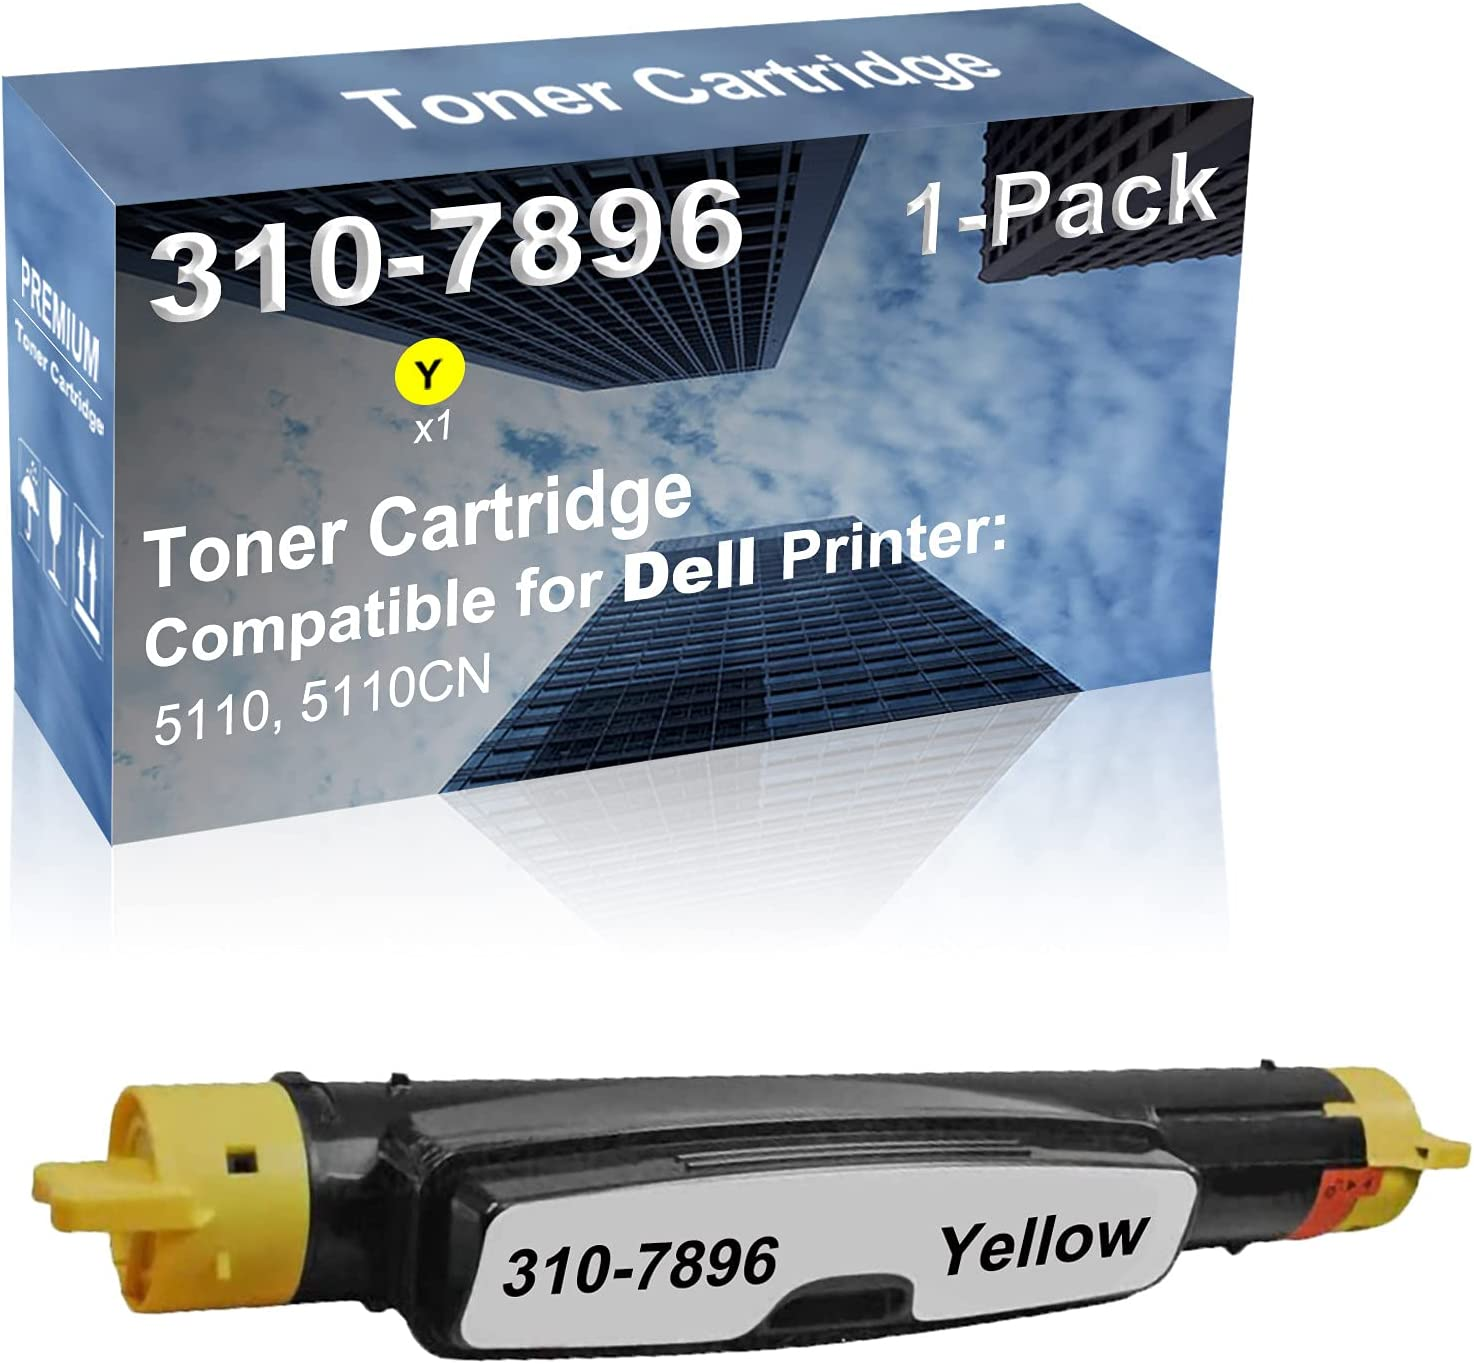 1-Pack (Yellow) Compatible 5110, 5110CN Printer Toner Cartridge High Capacity Replacement for Dell 310-7896 Toner Cartridge